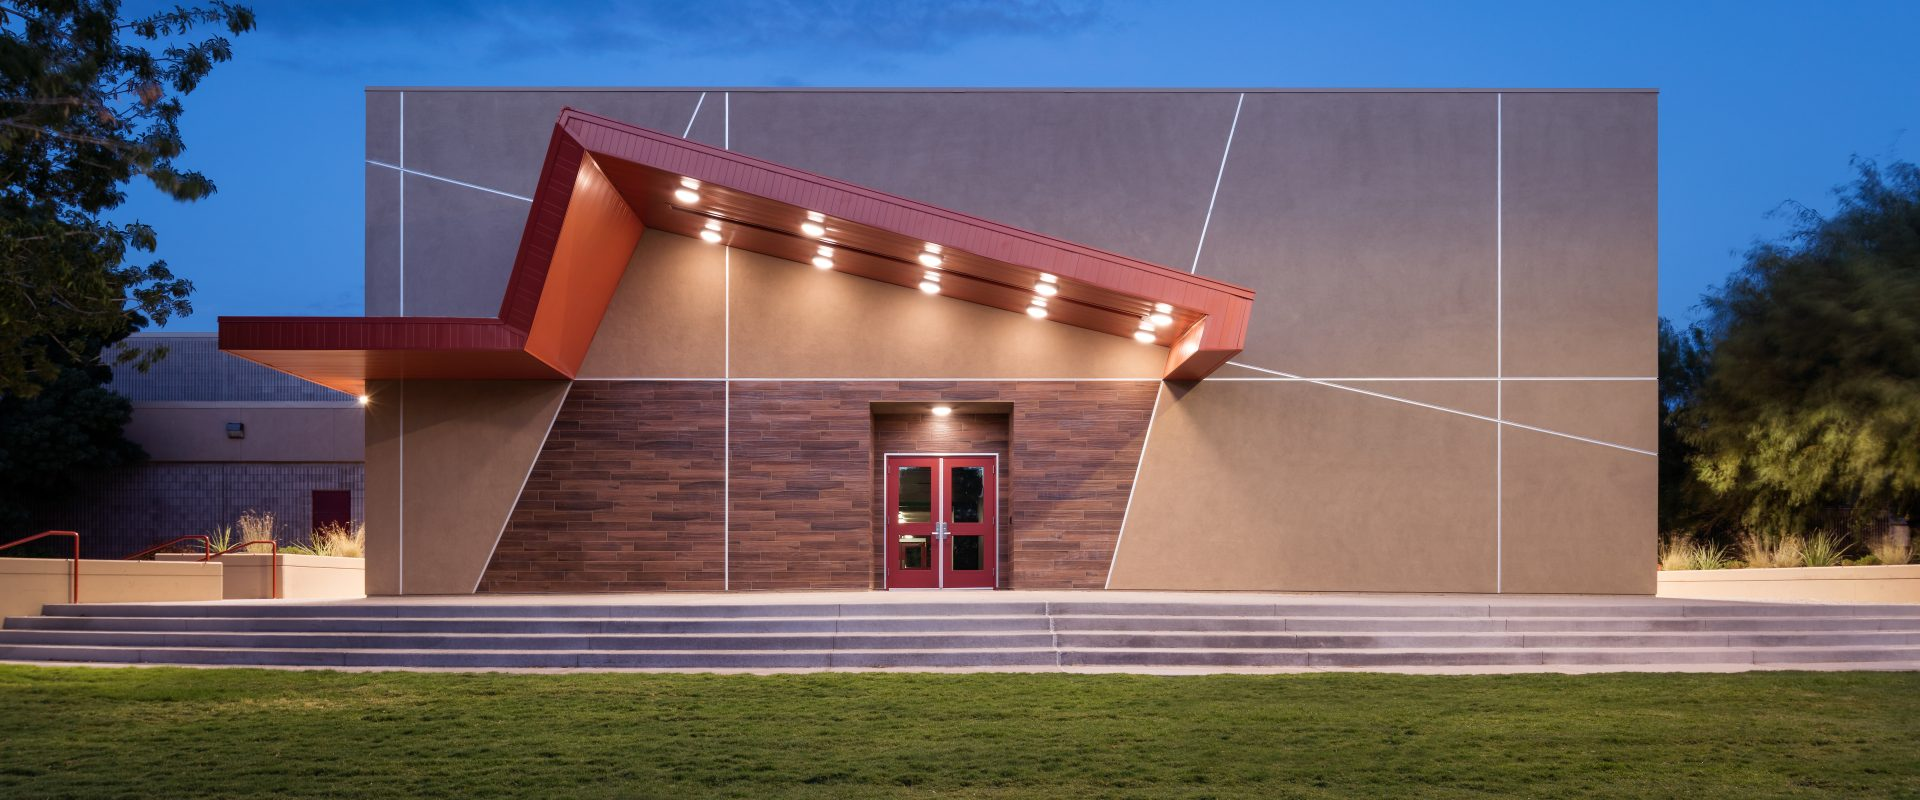 Exterior twilight view of the Winchester Cultural Center extension in Las Vegas, NV.